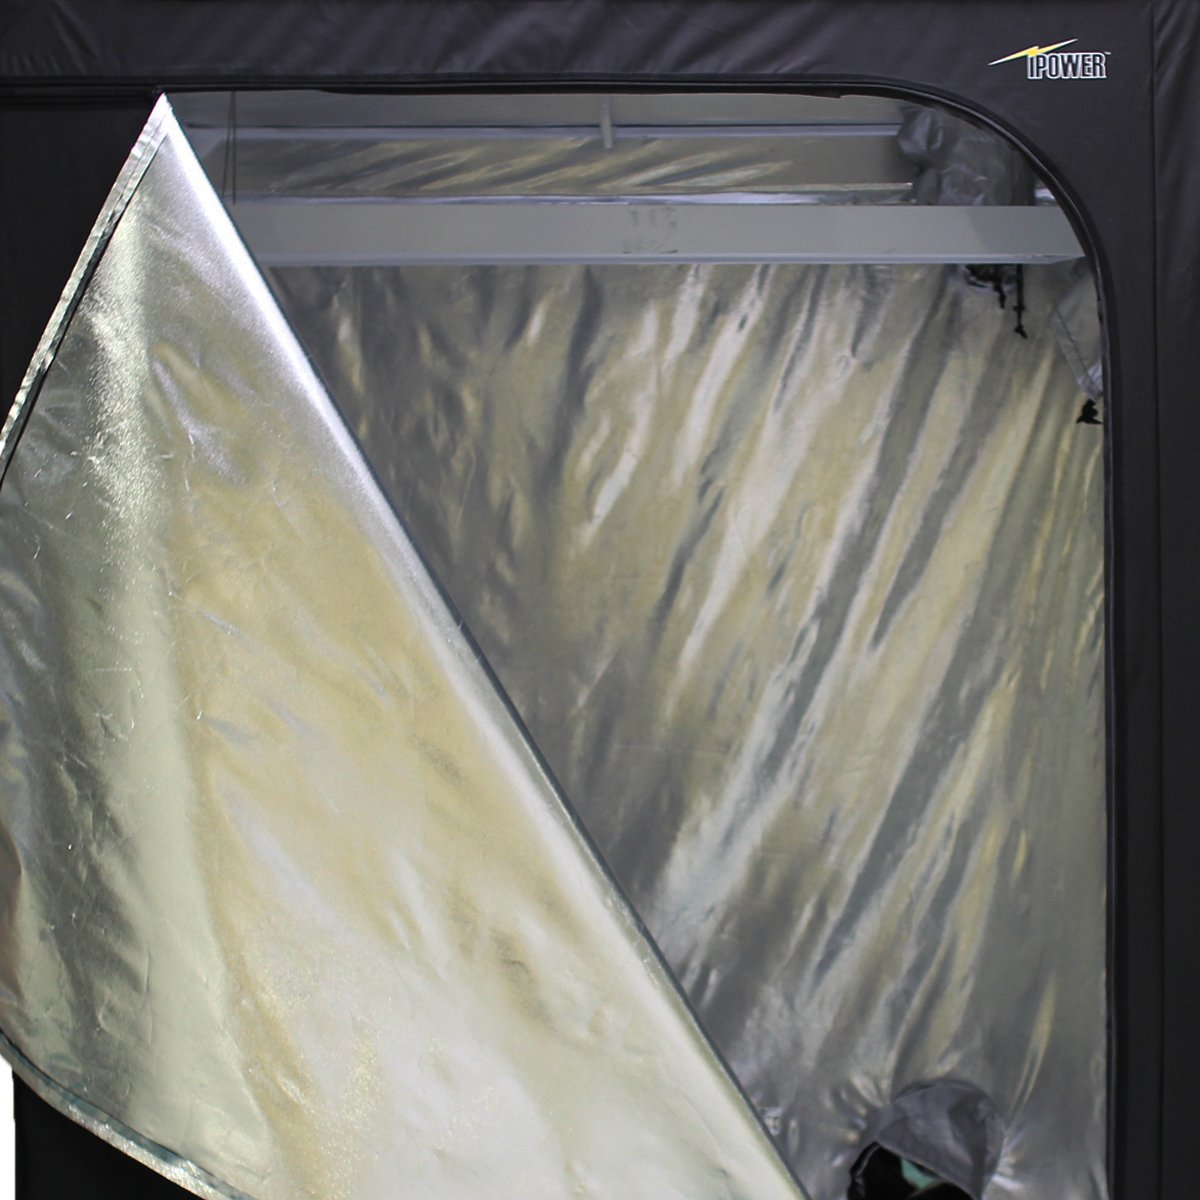 iPower 60''x60''x78'' 5'x5' Hydroponic Mylar Grow Tent with Observation Window, Tool Bag and Floor Tray for Grow Light and Indoor Plant Growing by iPower (Image #3)